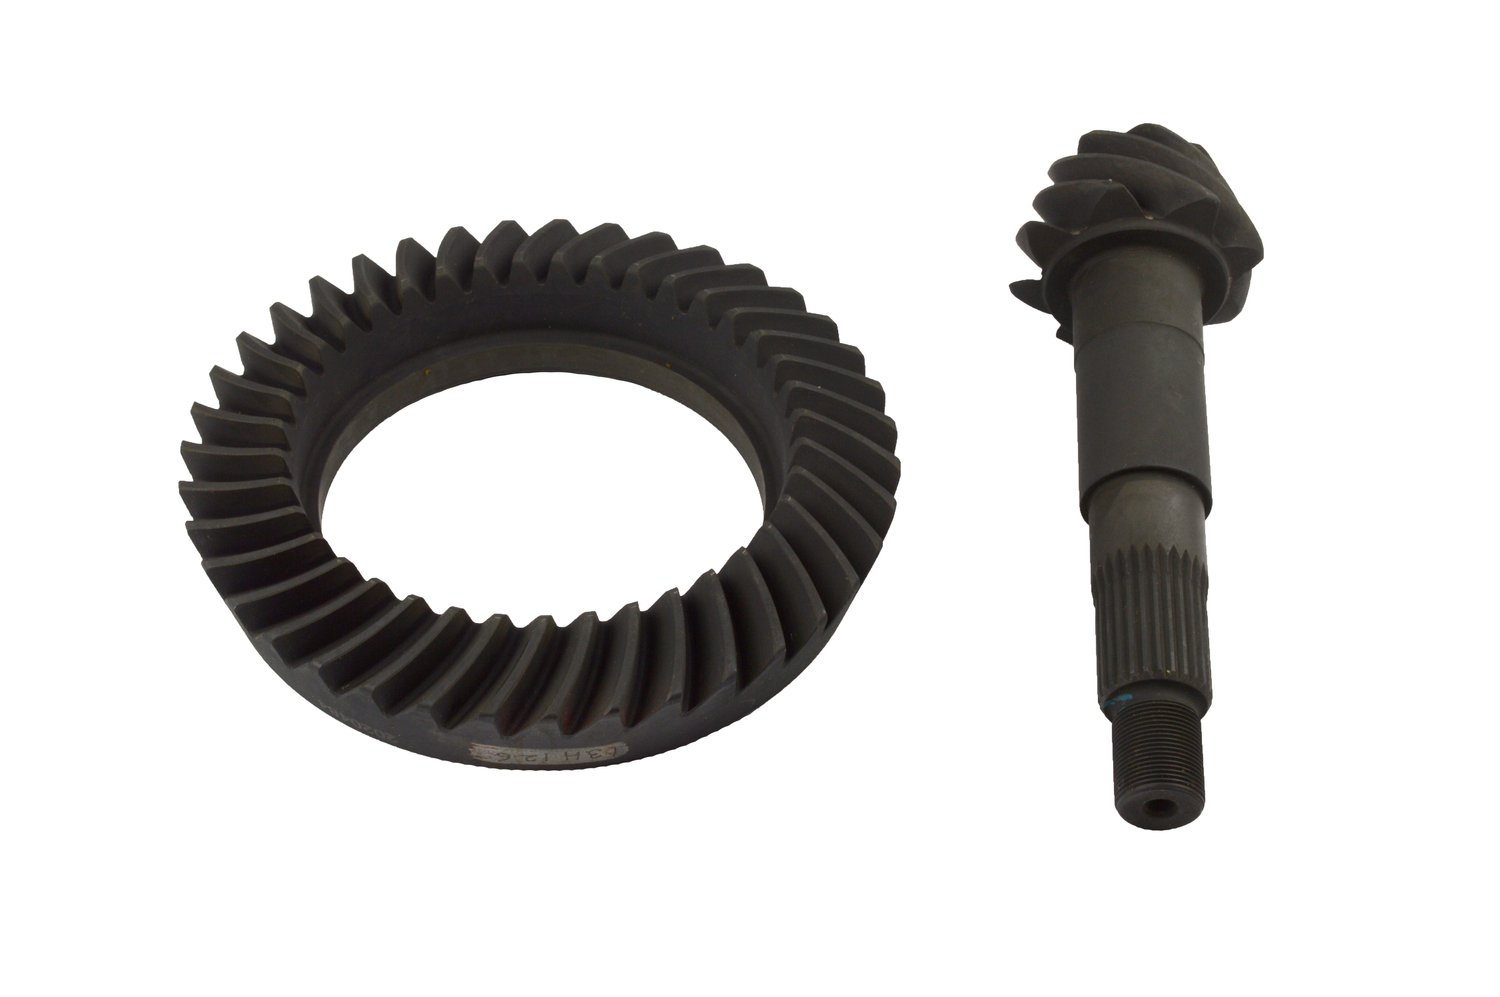 SVL 2020484 Ring and Pinion Gear Set for Dana 35 Axle by SVL